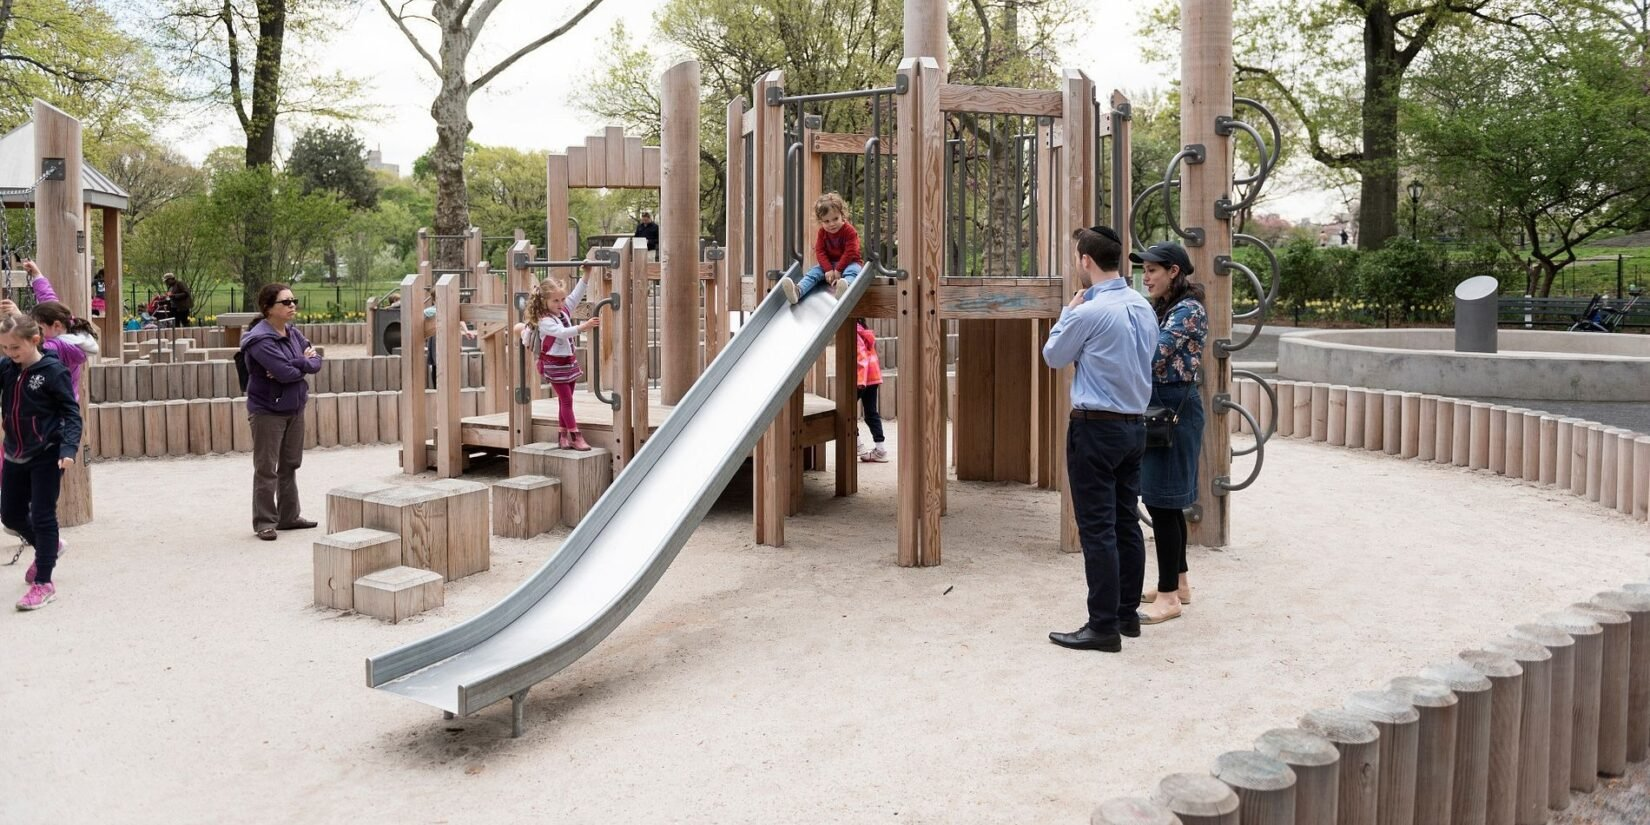 A few parents watch as a toddler prepares to slide down the sliding pond